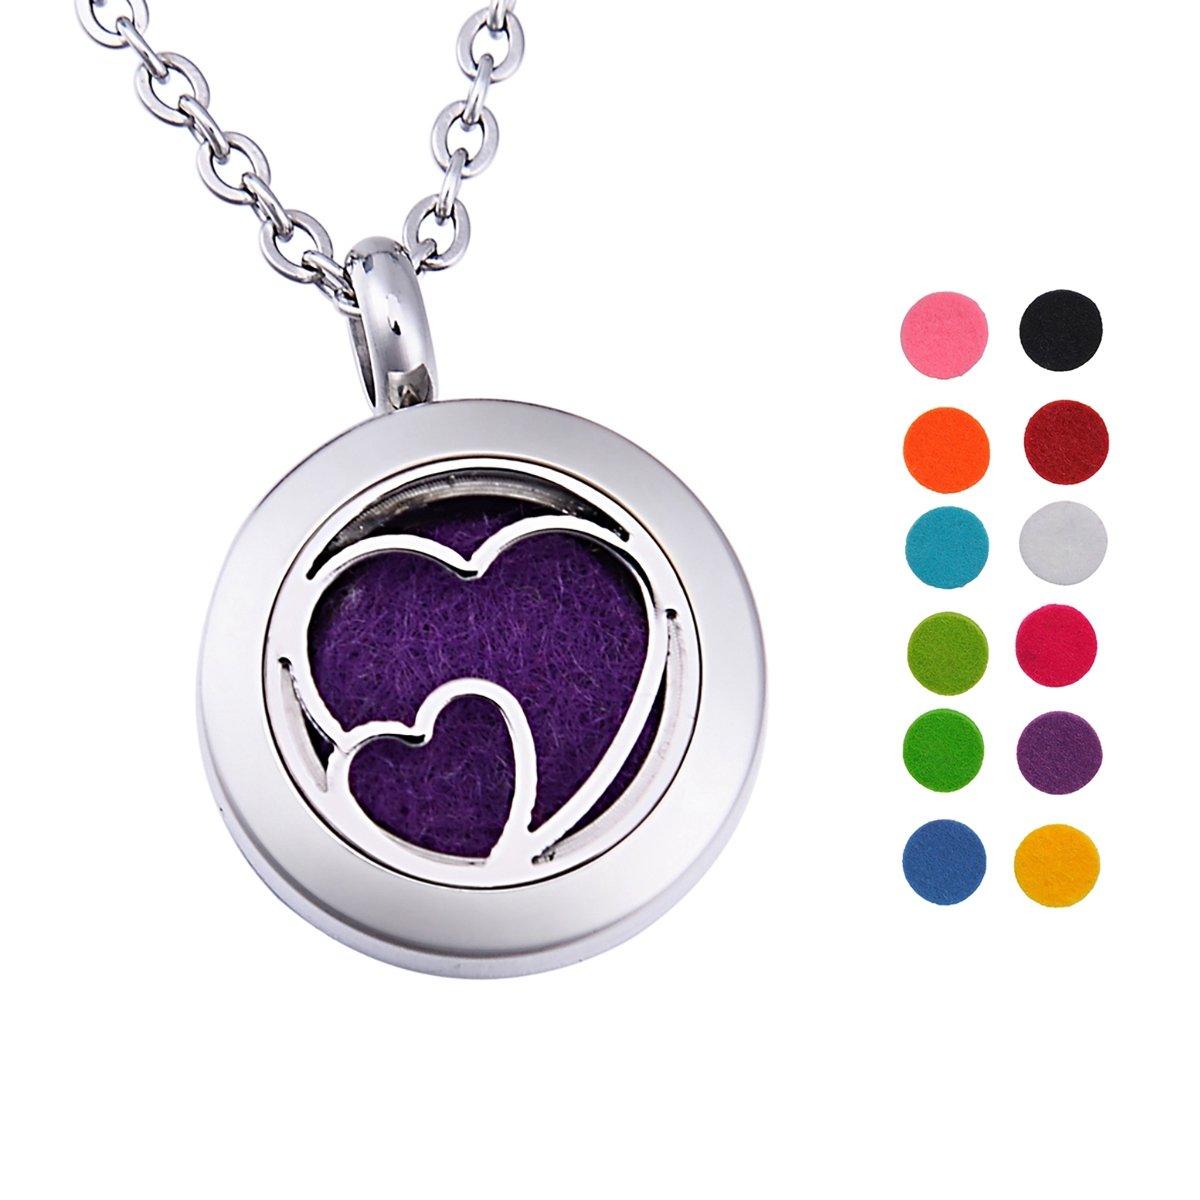 Double Heart Aromatherapy Essential Oil Diffuser Necklace Stainless Steel Pendant Locket with 12 Pads Supreme glory SGto-B226004